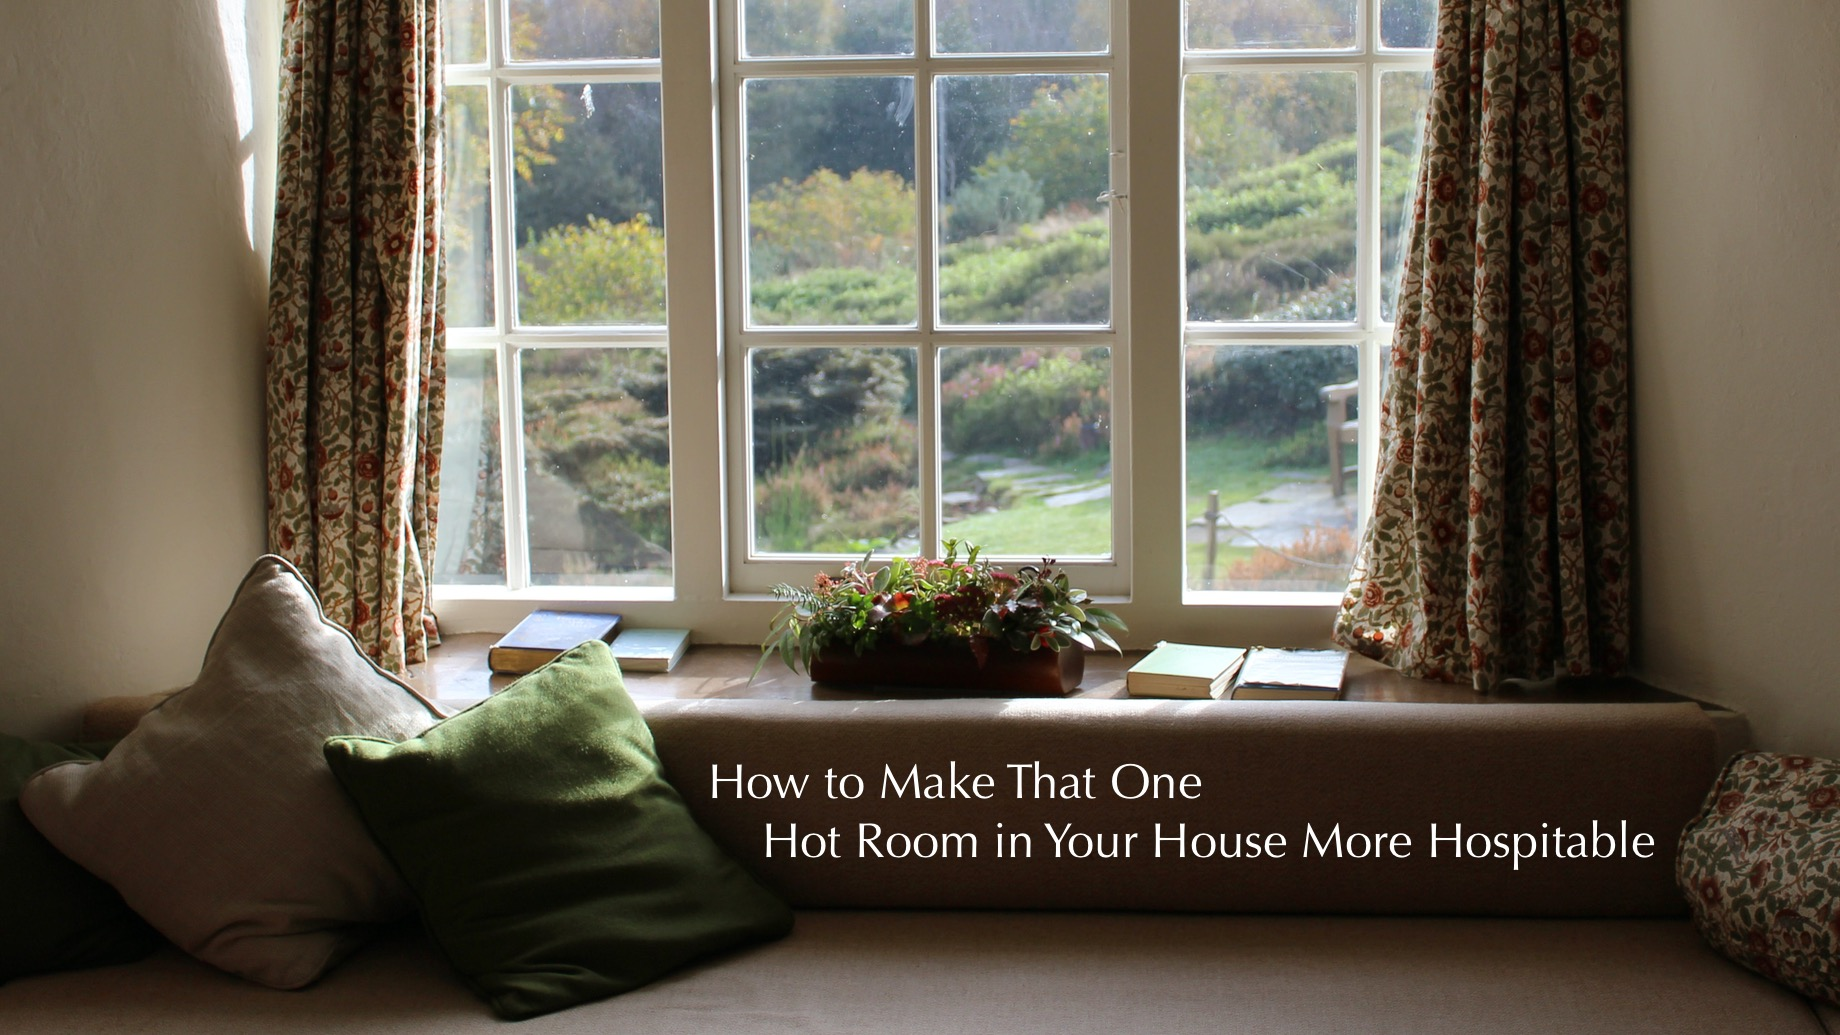 How to Make That One Hot Room in Your House More Hospitable